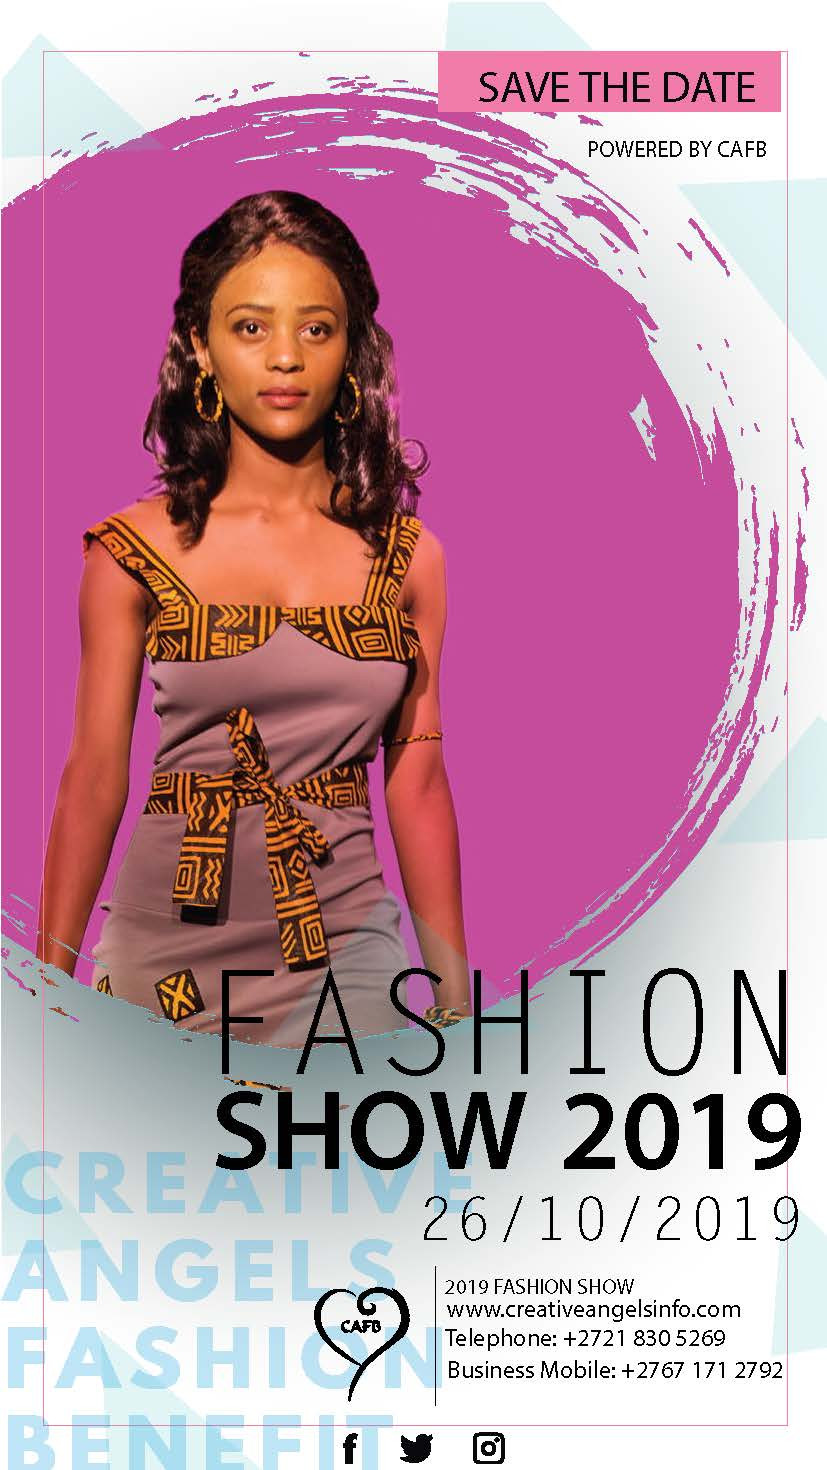 CAFB 2019: The Rainbow Nation (Fashion Show) to be held at The River Club, Observatory, Cape Town on 26 October 2019.